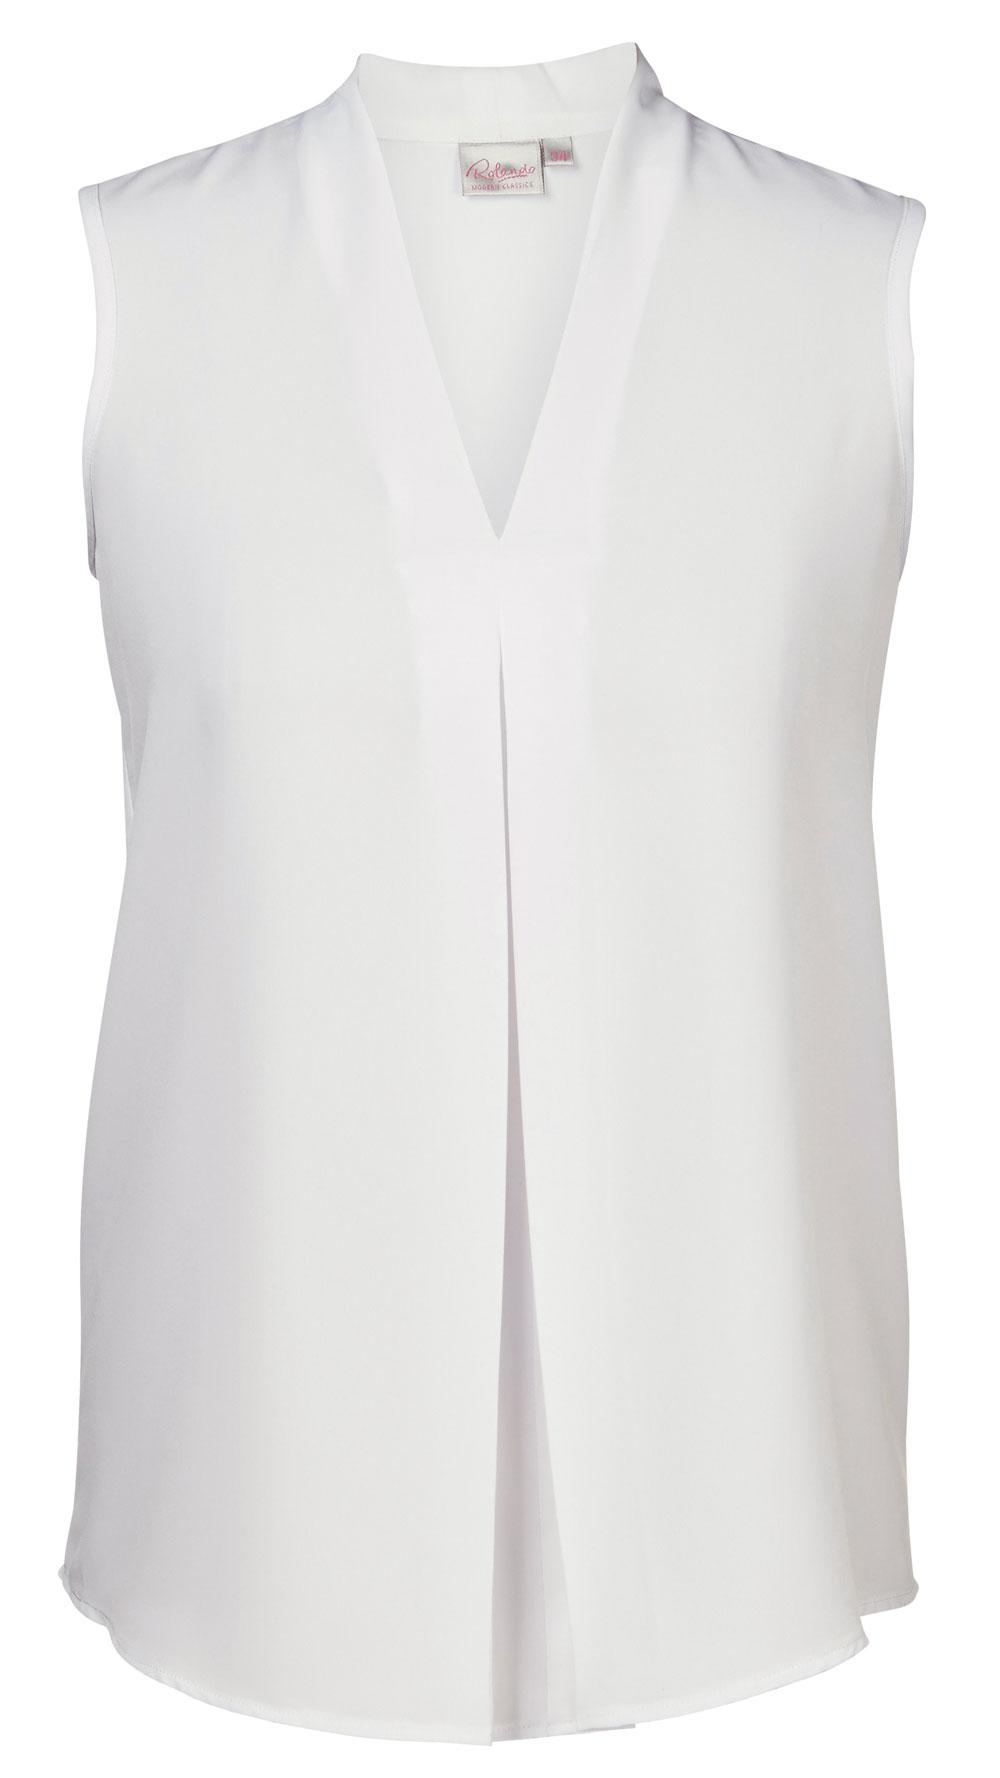 Lyra K225 S/less Blouse - White